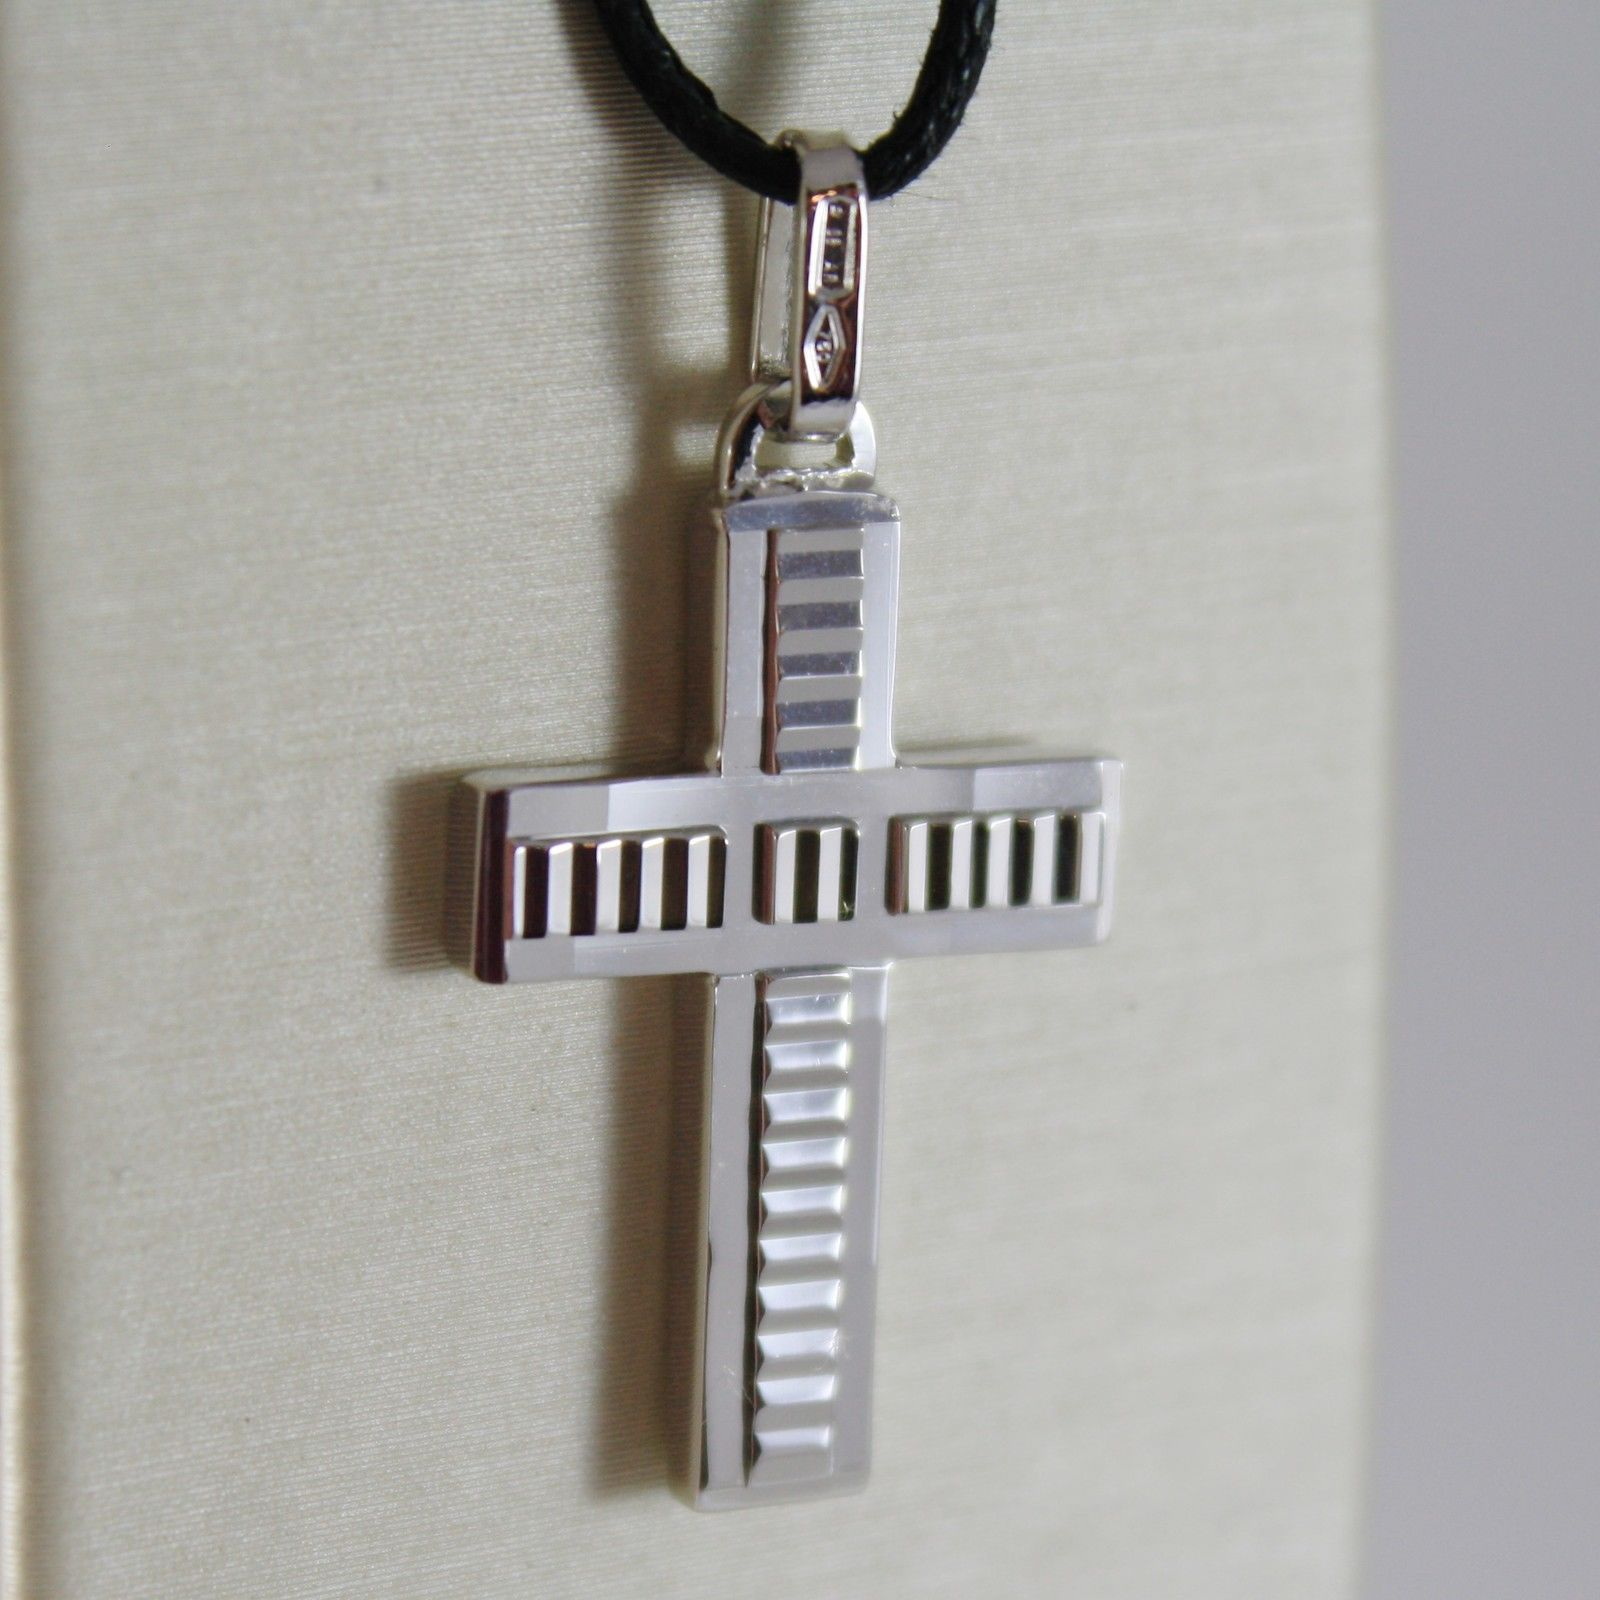 18K WHITE GOLD CROSS SQUARED STYLIZED SMOOTH HAMMERED 1.18 INCH. MADE IN ITALY